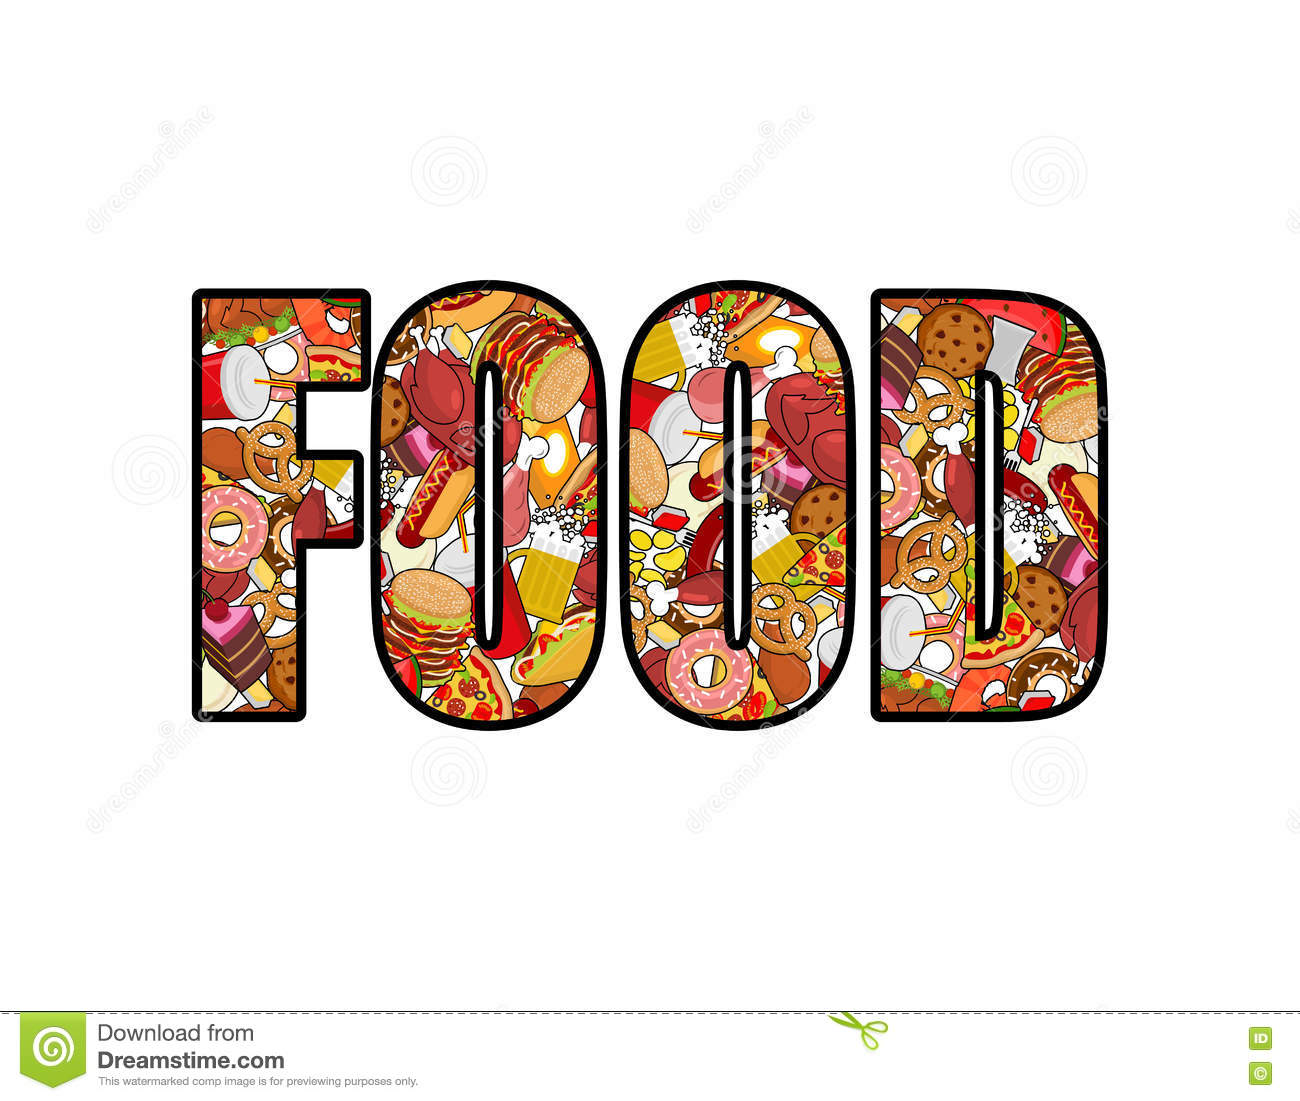 Food Letters  Food. Cinderella Stickers. Viva Banners. Small Label Printer. Silver Wall Stickers. Self Stick Wall Murals. Decoration Murals. Textured Wall Murals. 10% Signs